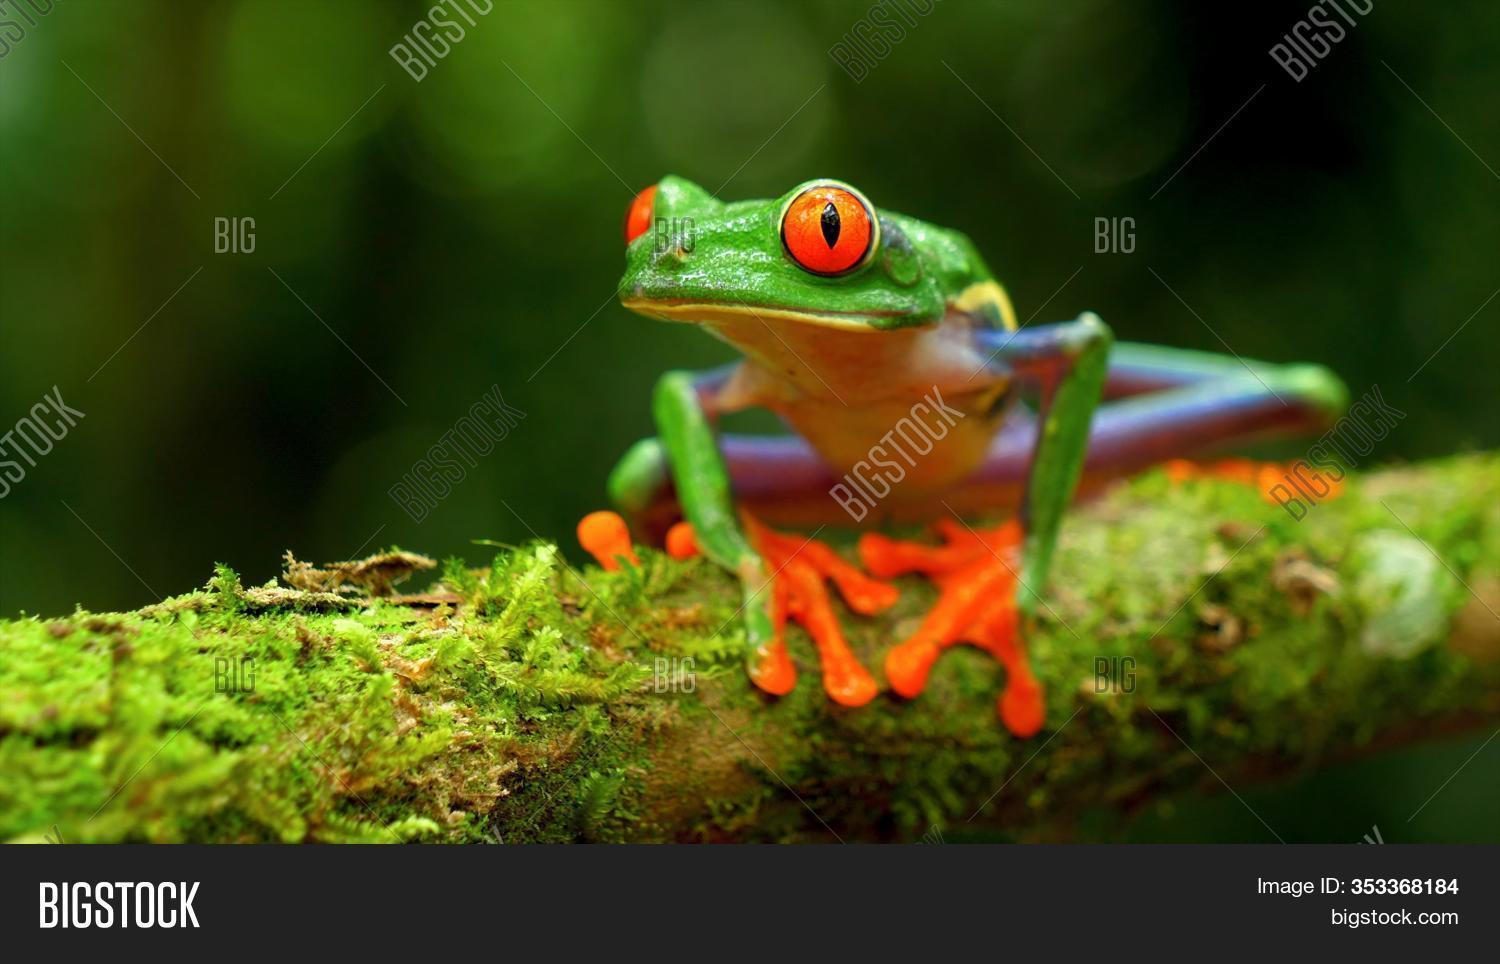 Red Eyed Tree Frog Image Photo Free Trial Bigstock